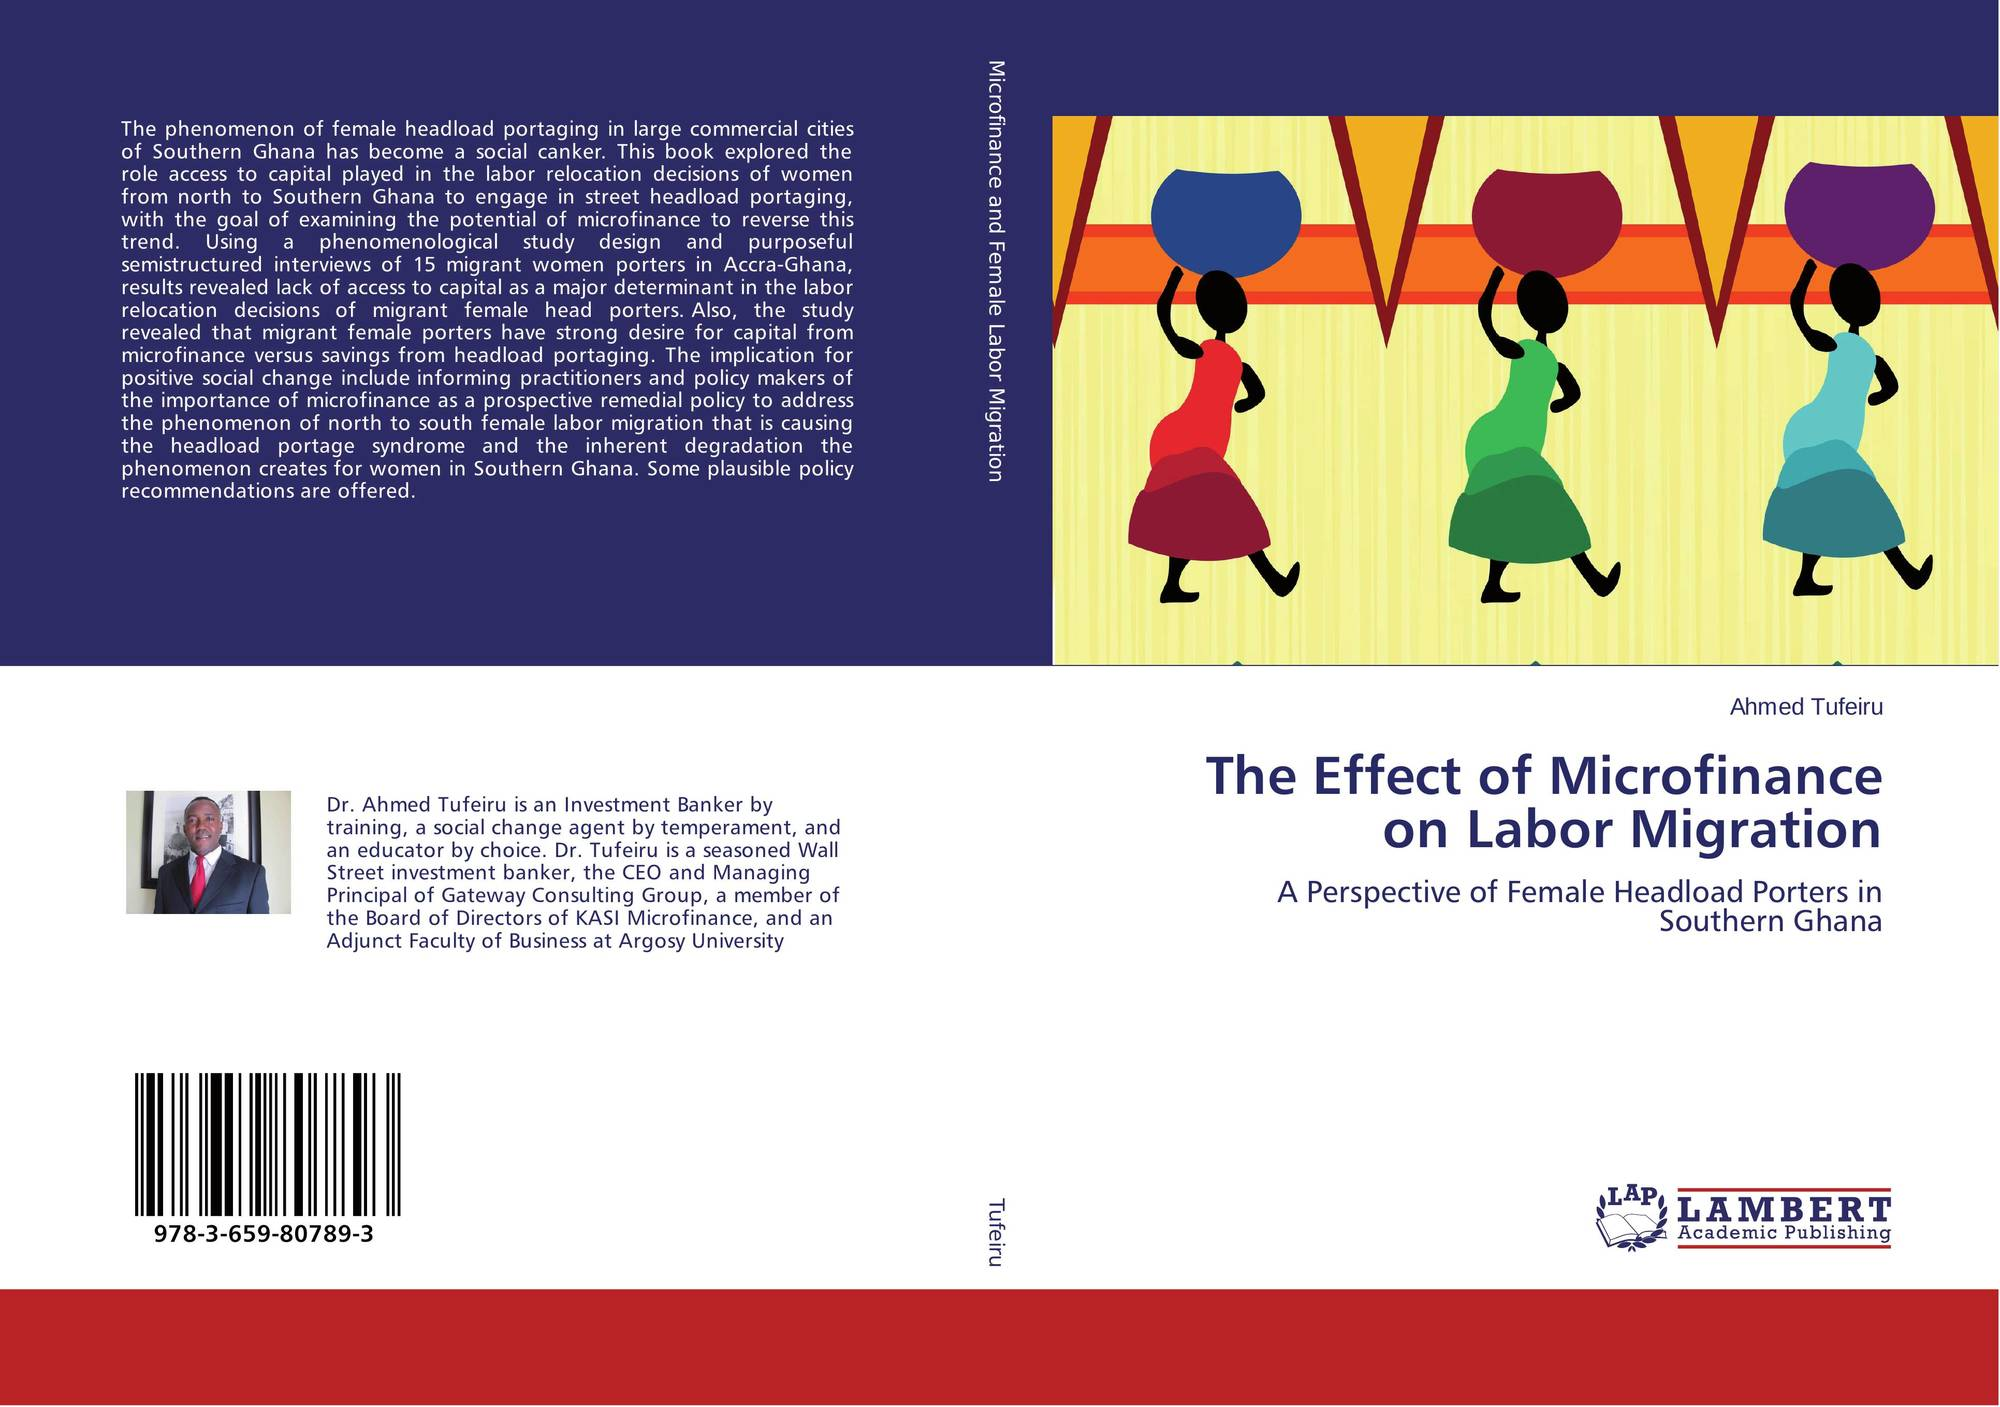 a study of the labor migration A case study of the sudan oberai as pip: investigation of migration, unemployment, and the urban labor in sudan was based on the household socioeconomic survey of greater khartoum, conducted in october-november 1974.